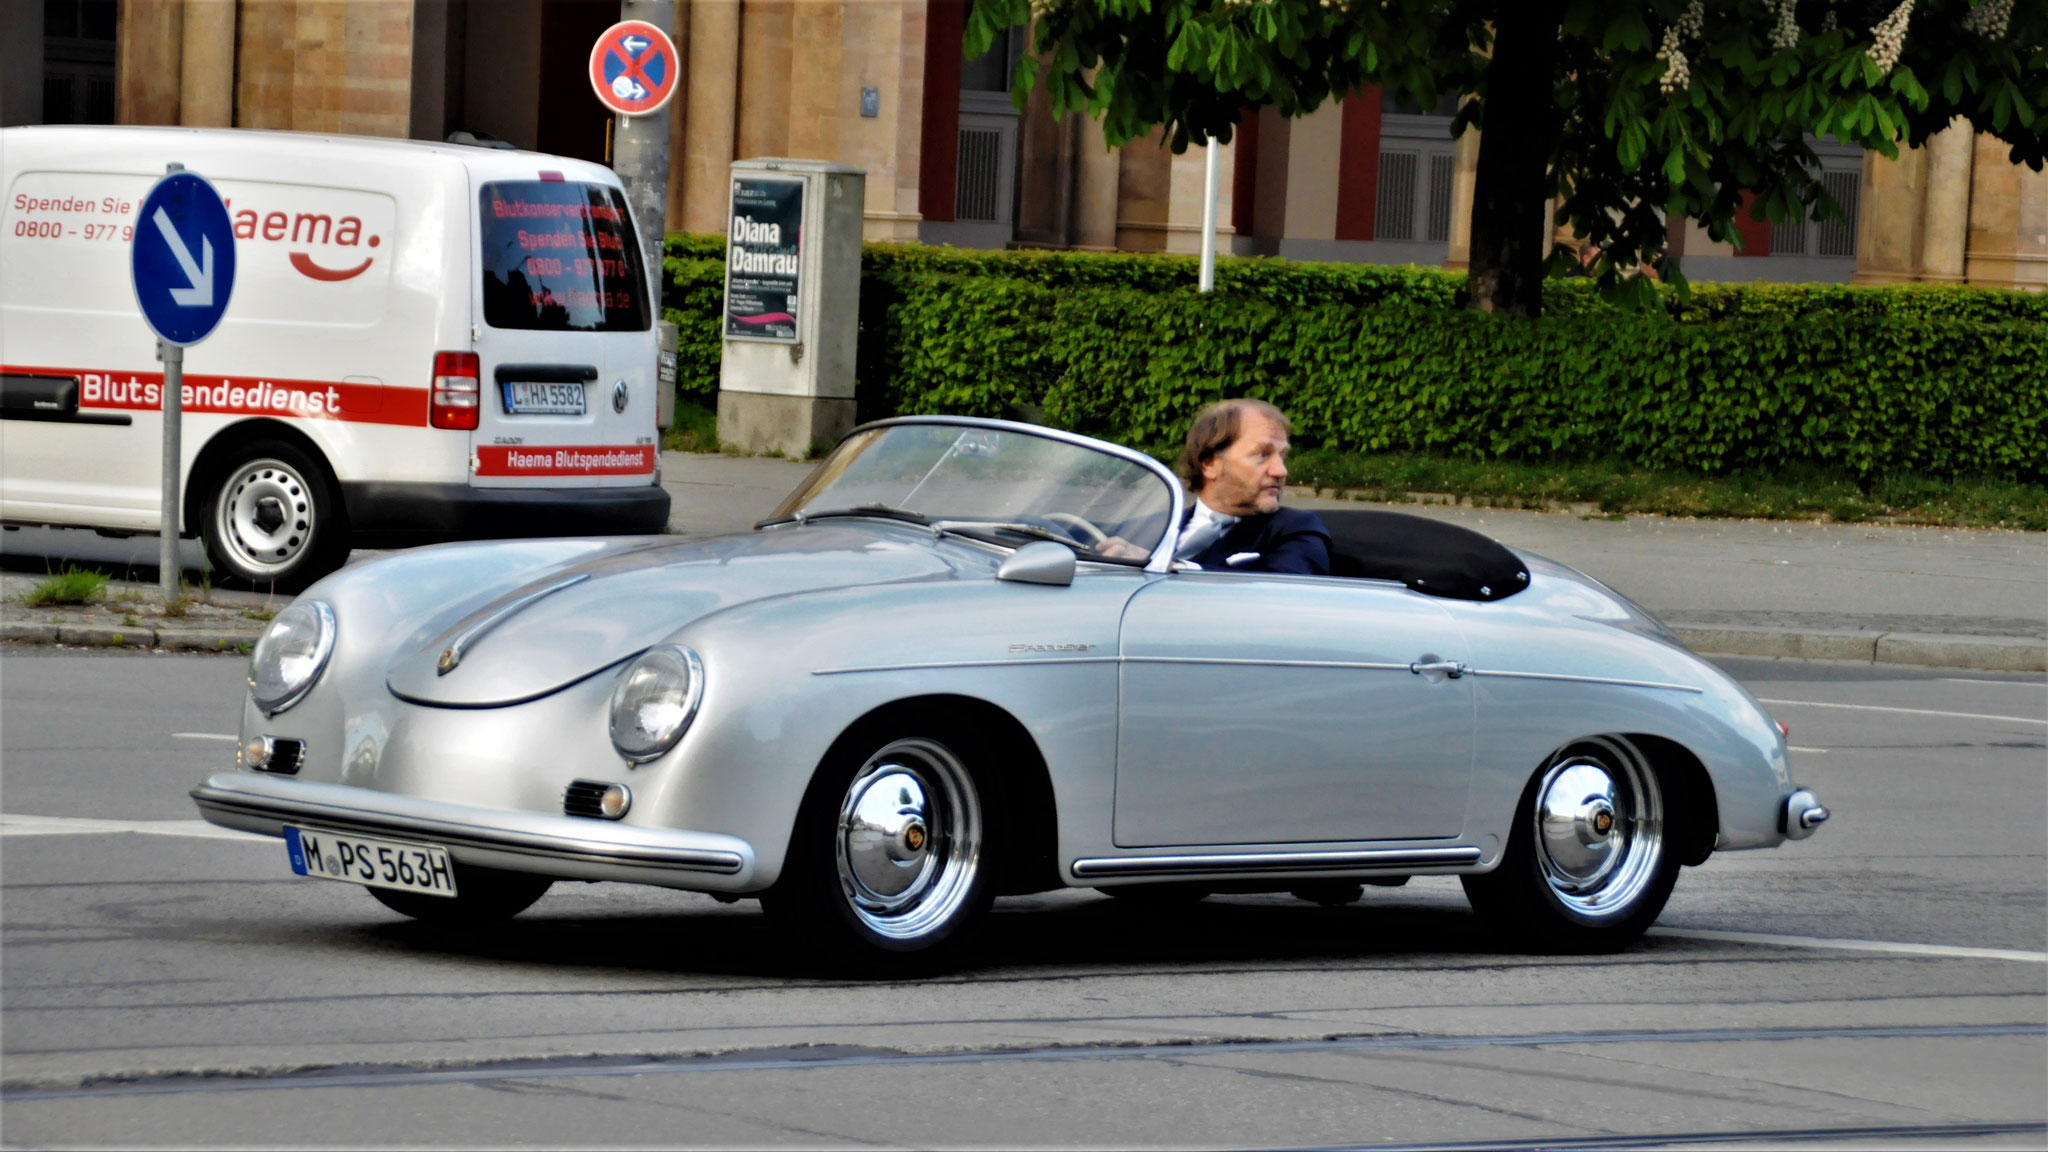 Porsche 356 1500 Speedster - M-PS-563H